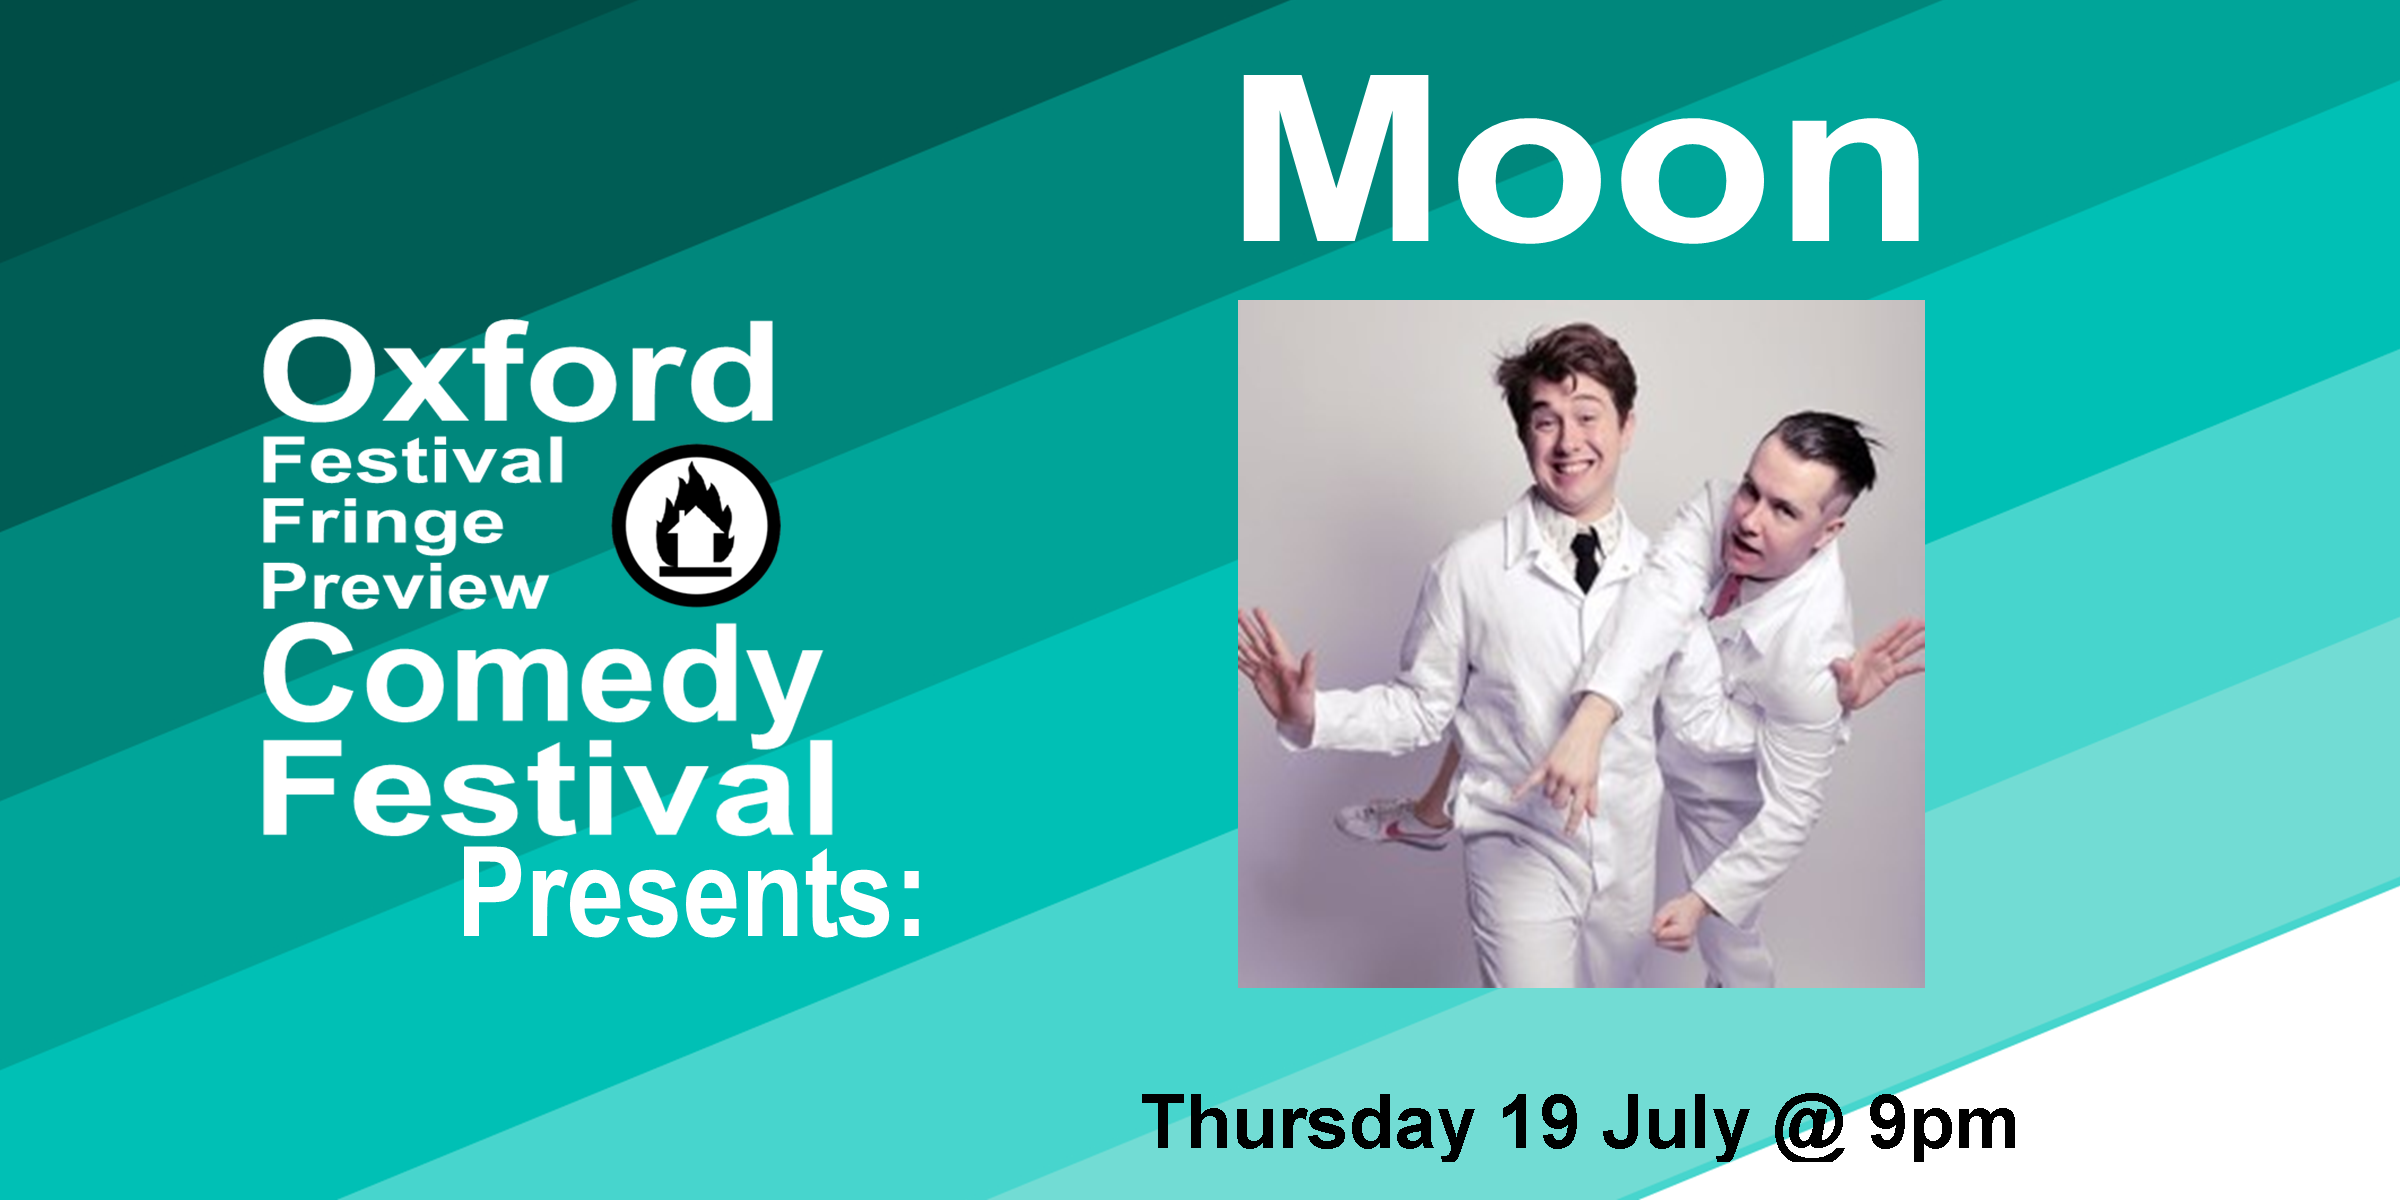 Moon is a comedy double-act by Jack Chisnall and Joshua Dolphin, two proud sons of England's provincial backwaters. They'll be hawking up their brand of dark, unexpected, and immersive sketches at this year's Edinburgh Fringe for the first time. Armed with some nifty soundtrack trickery and plenty of acting chops, they've weaved together this eye-catching debut hour. Leicester Square Sketch-Off finalists 2018. Writers for BBC Radio 4's The Now Show. 'Excellent writing… ridiculous and amusing' ( Chortle.co.uk ). 'I could only dream of writing and performing something of this quality' **** ( BroadwayBaby.com ).  Doors at 8:50/Show at 9pm  60 minutes    Get Your Tickets Here!